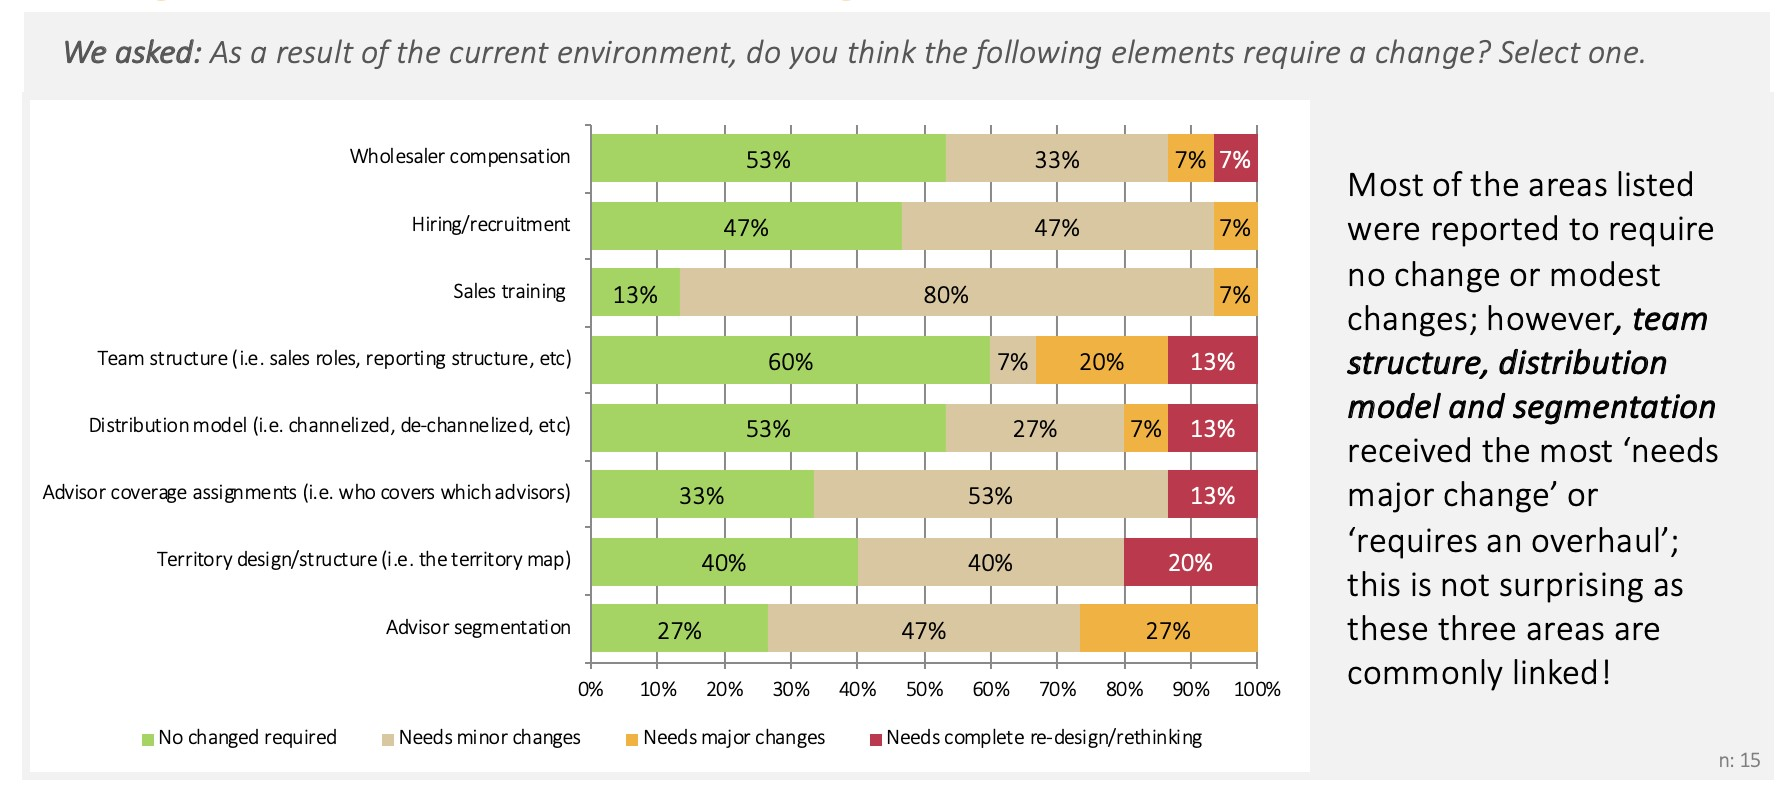 Chart shows survey results as to which elements require change in the current environment